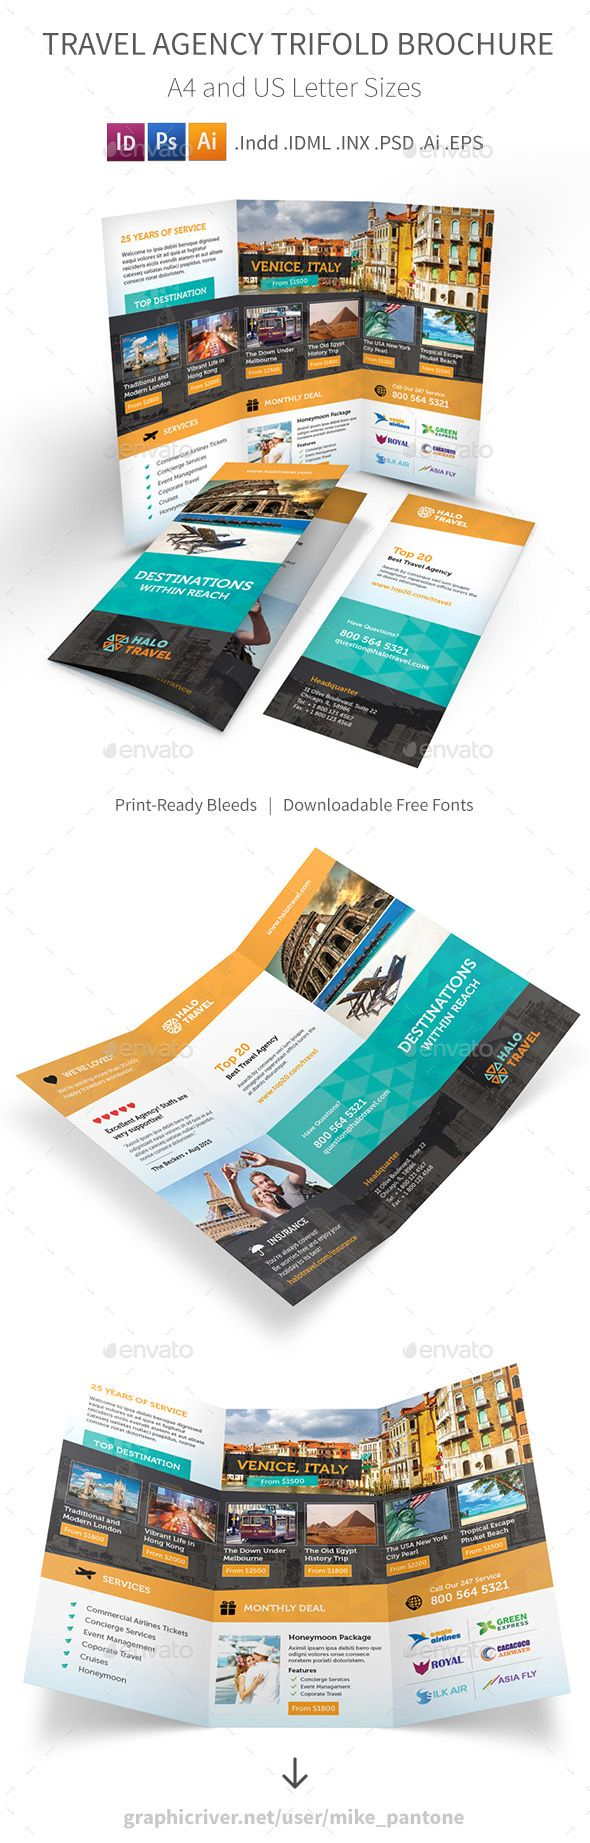 Travel Agency Trifold Brochure 2